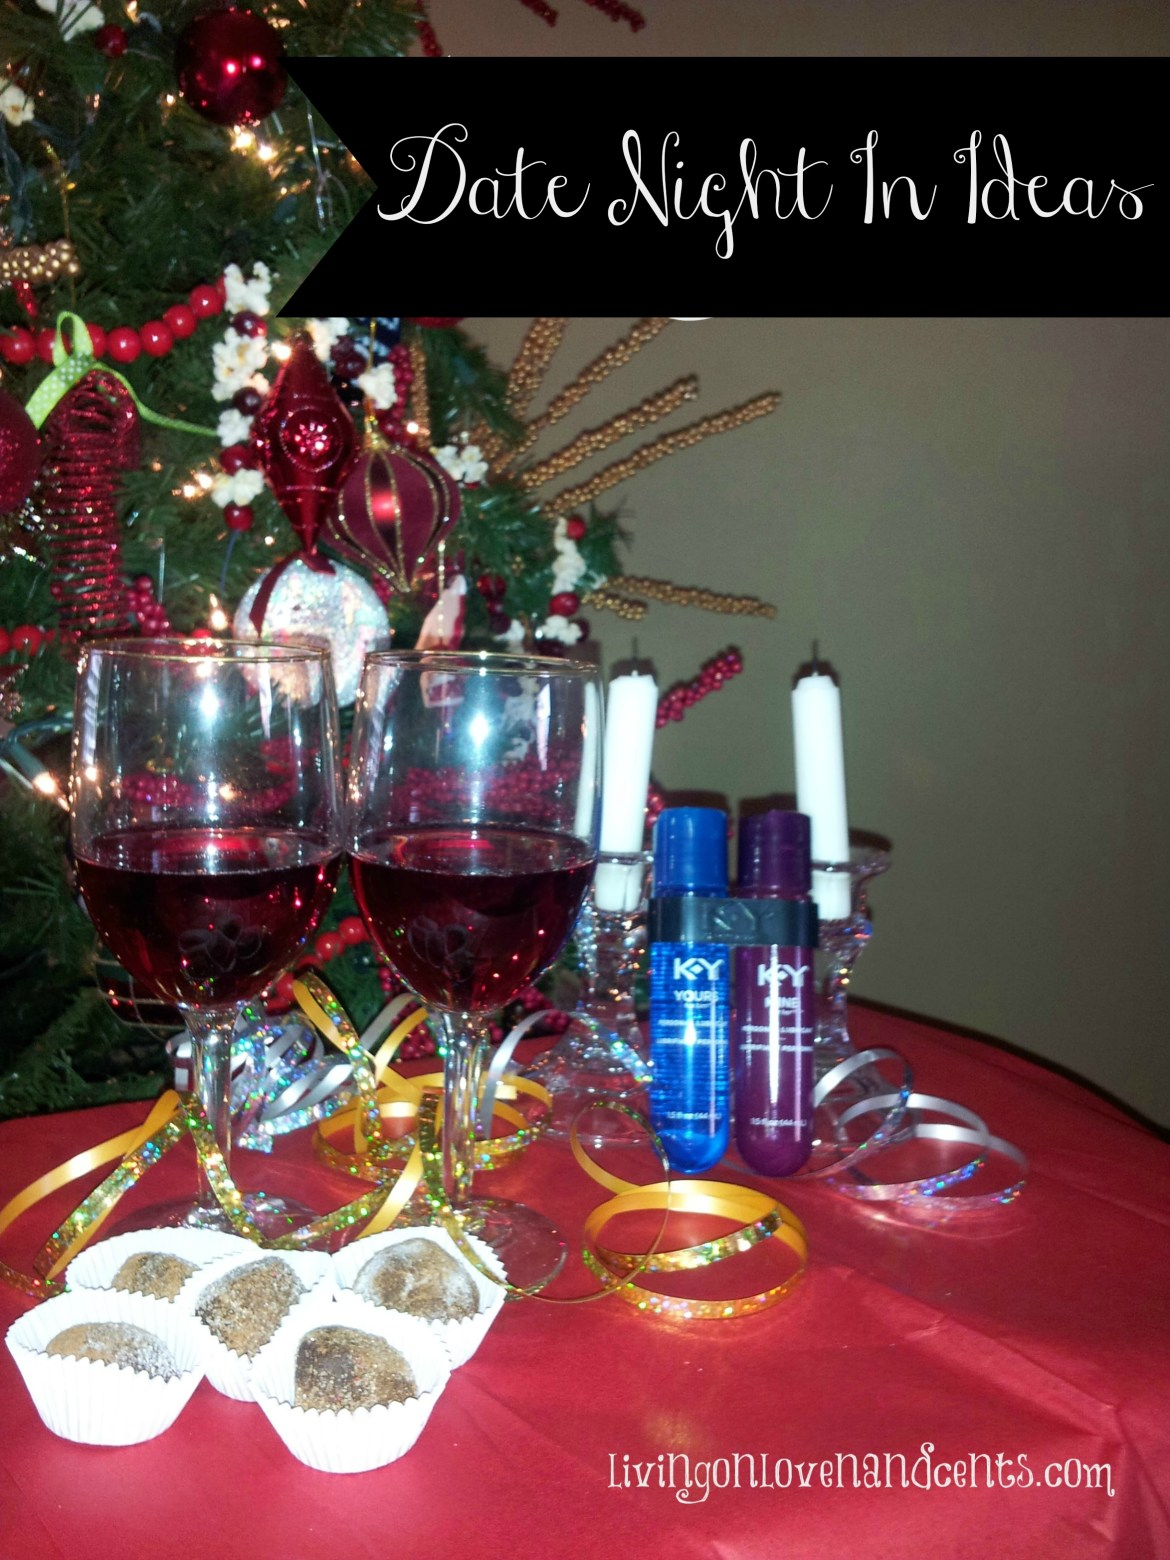 Date night, Date night in, Date idea, Intimacy, Intimacy enhancement, Couples lubricants, Personal lubricants, #shop, #cbias #KYdatenight